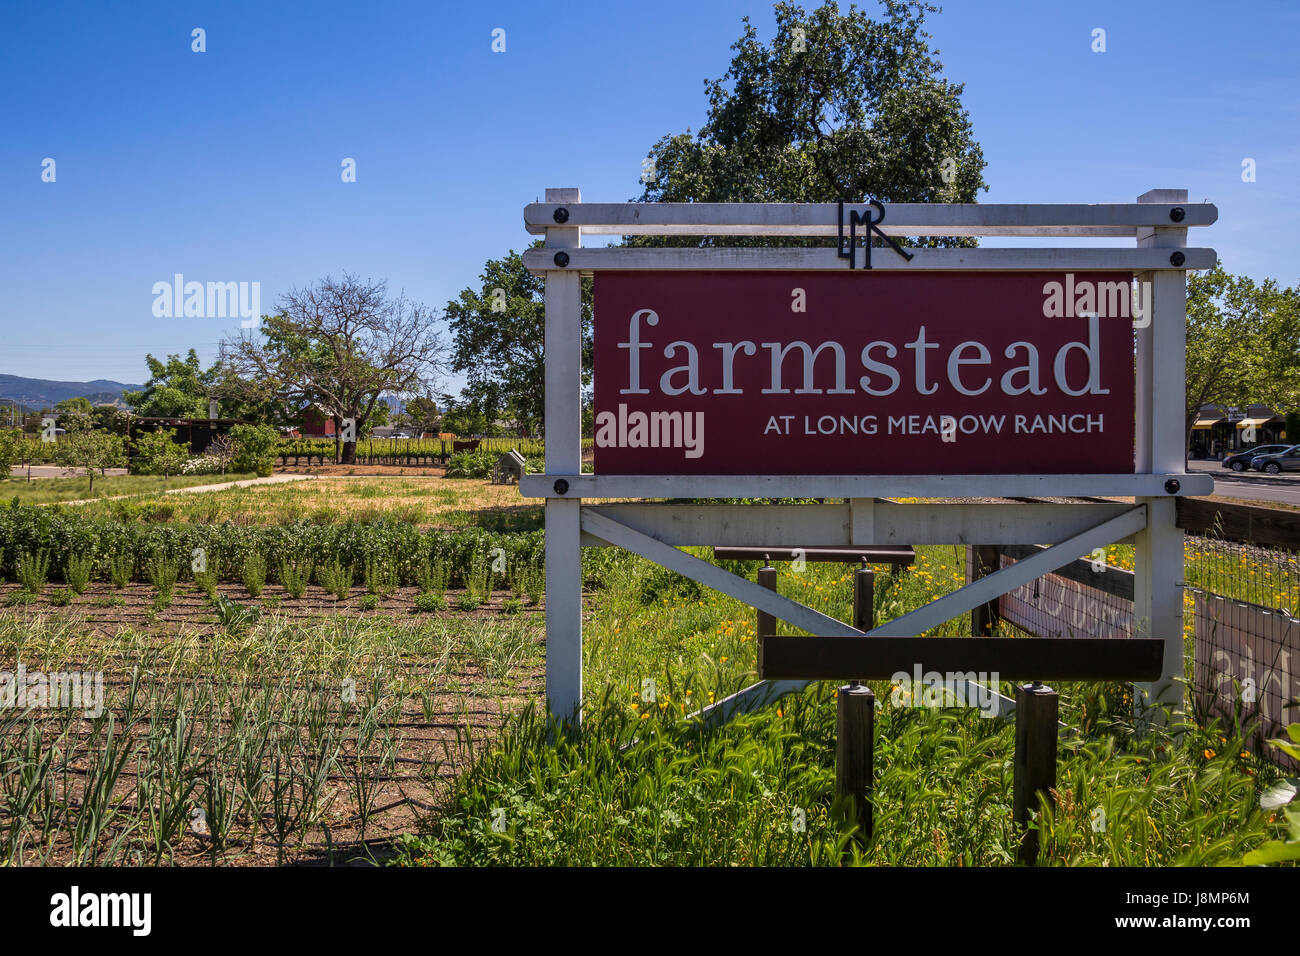 Culinary Garden, Culinary Gardens, Long Meadow Ranch Winery And Farmstead,  Saint Helena, Napa Valley, California, United States